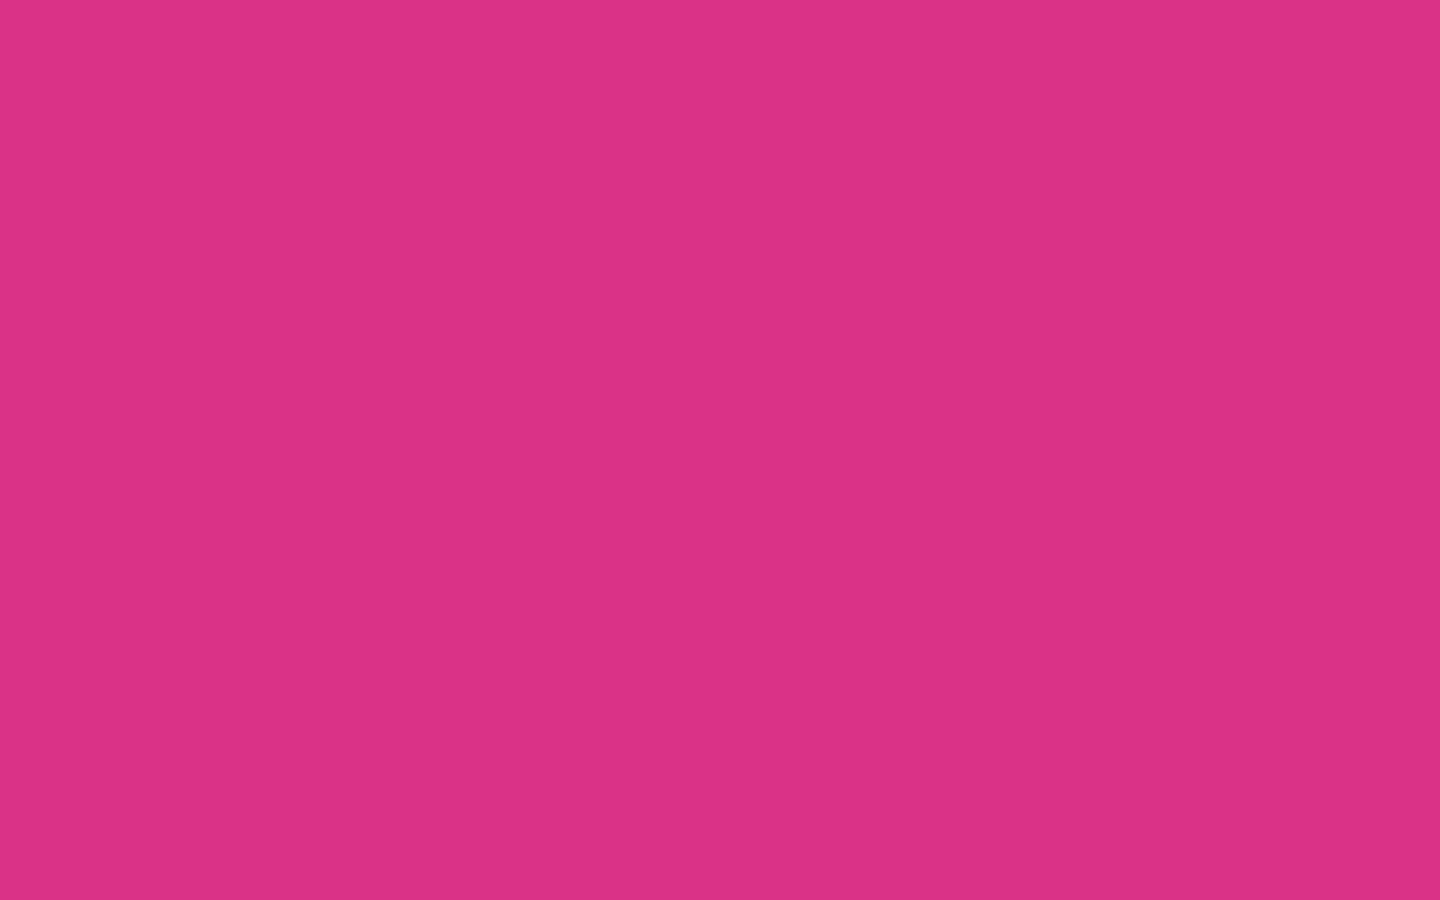 1440x900 Deep Cerise Solid Color Background